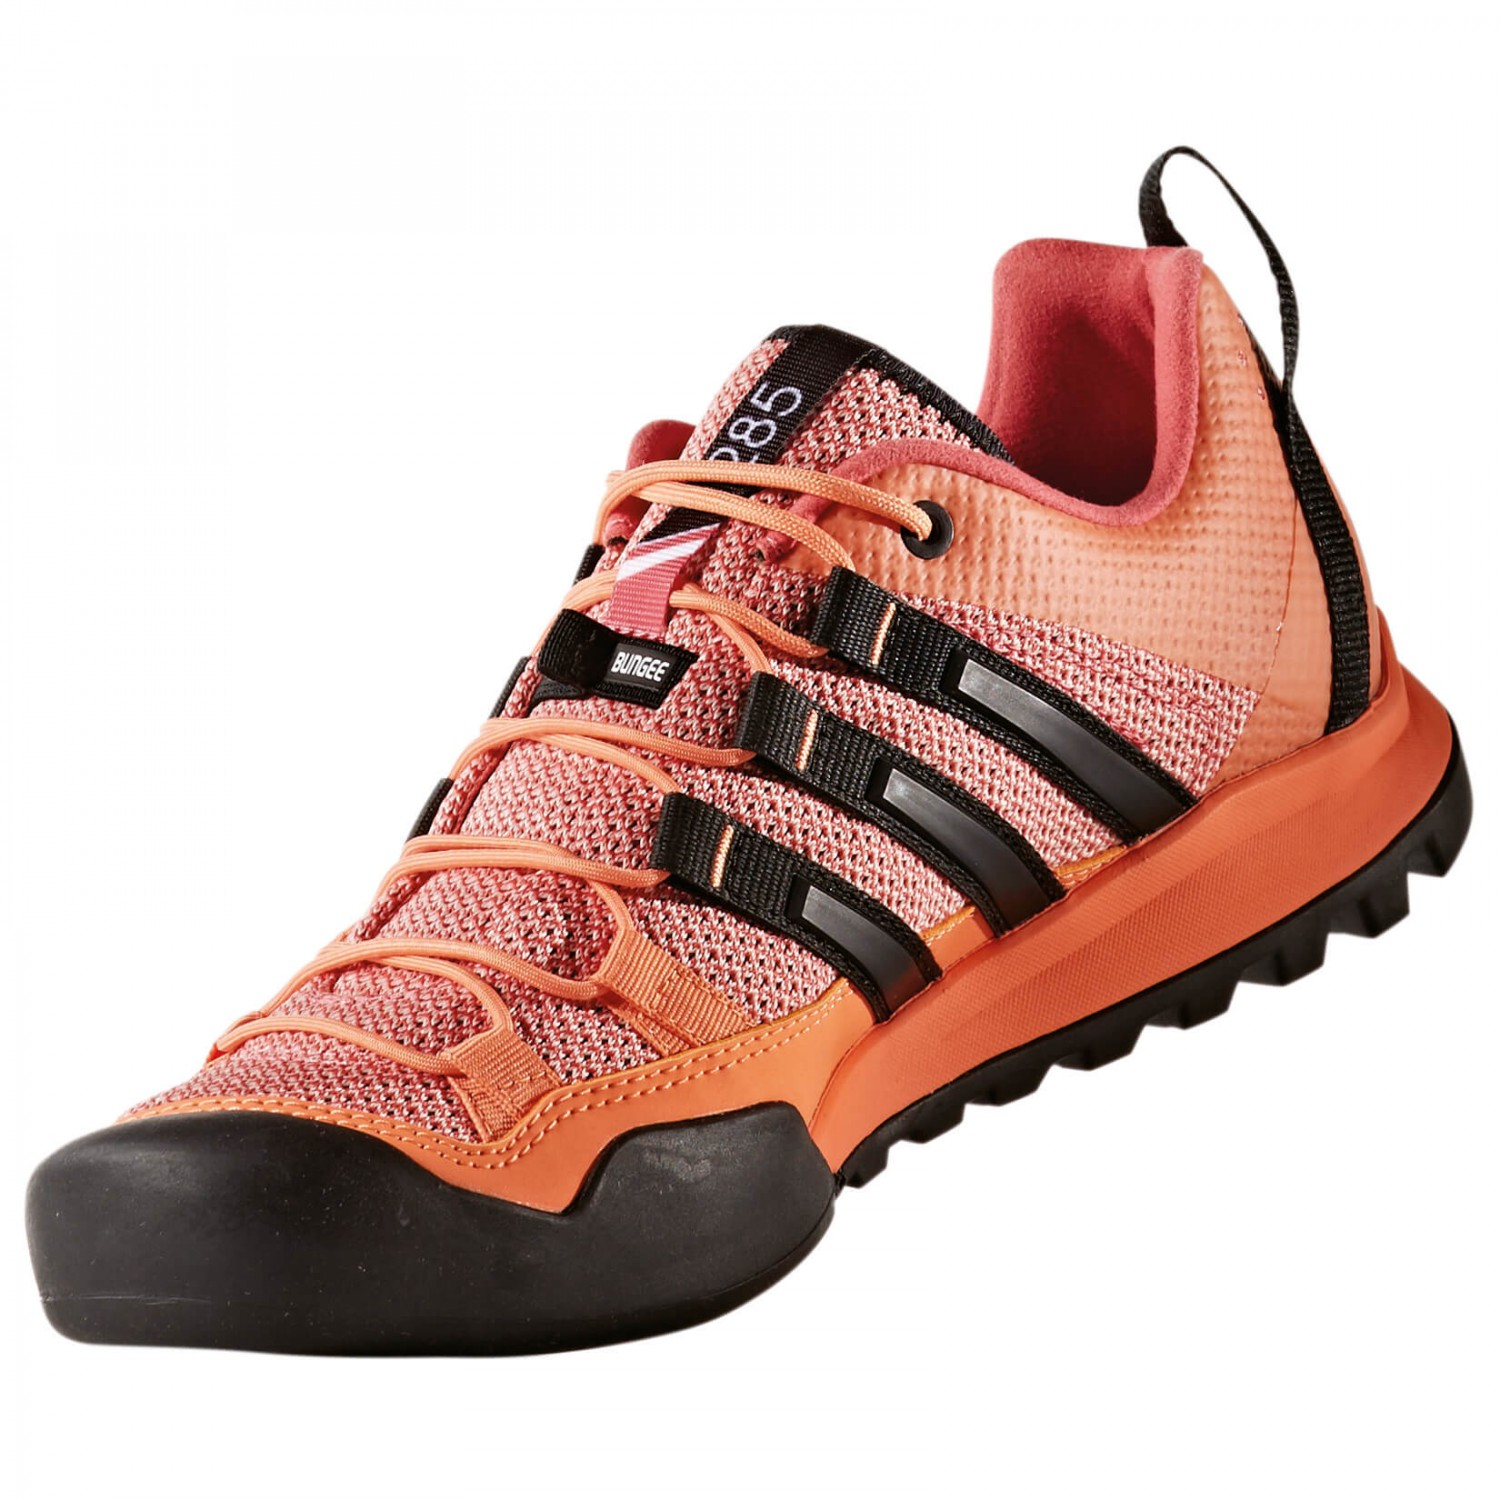 adidas Women's Terrex Solo Approach shoes